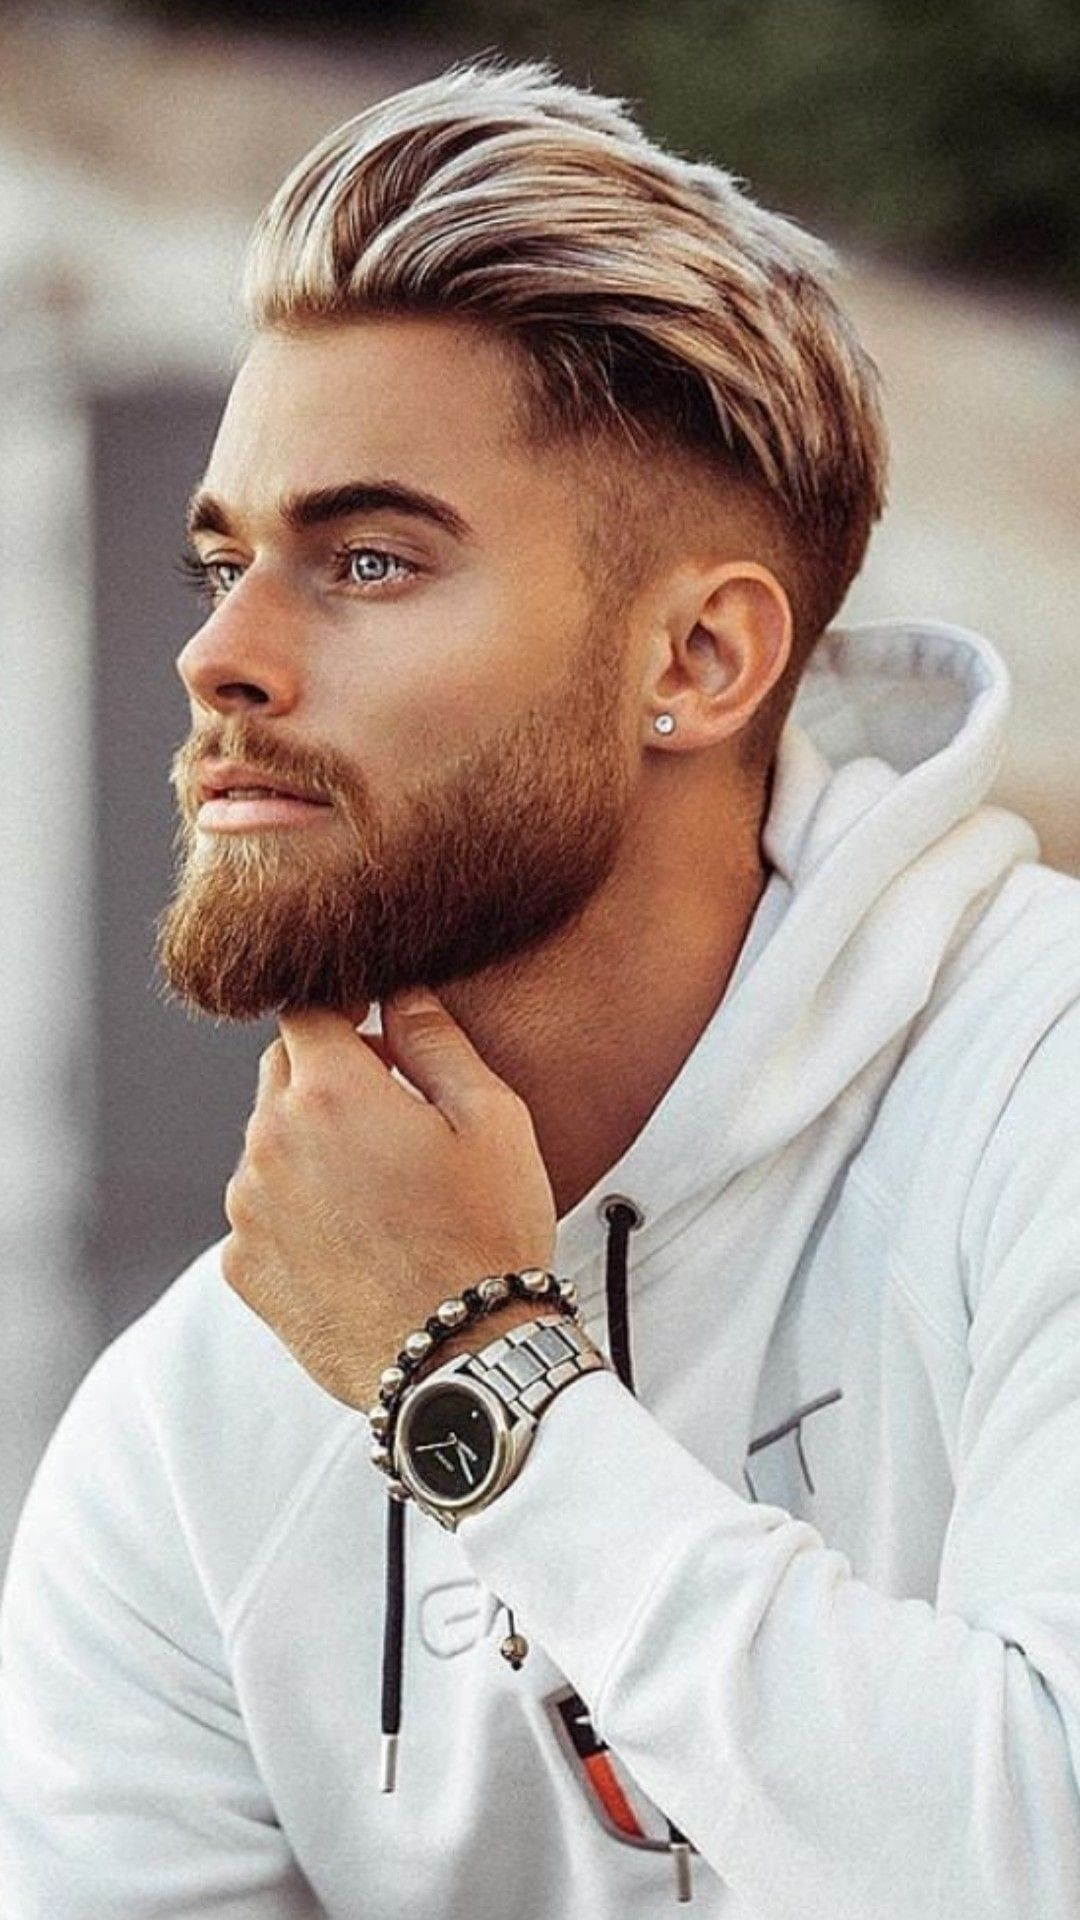 13 fashionable medium length hairstyles for men's you must